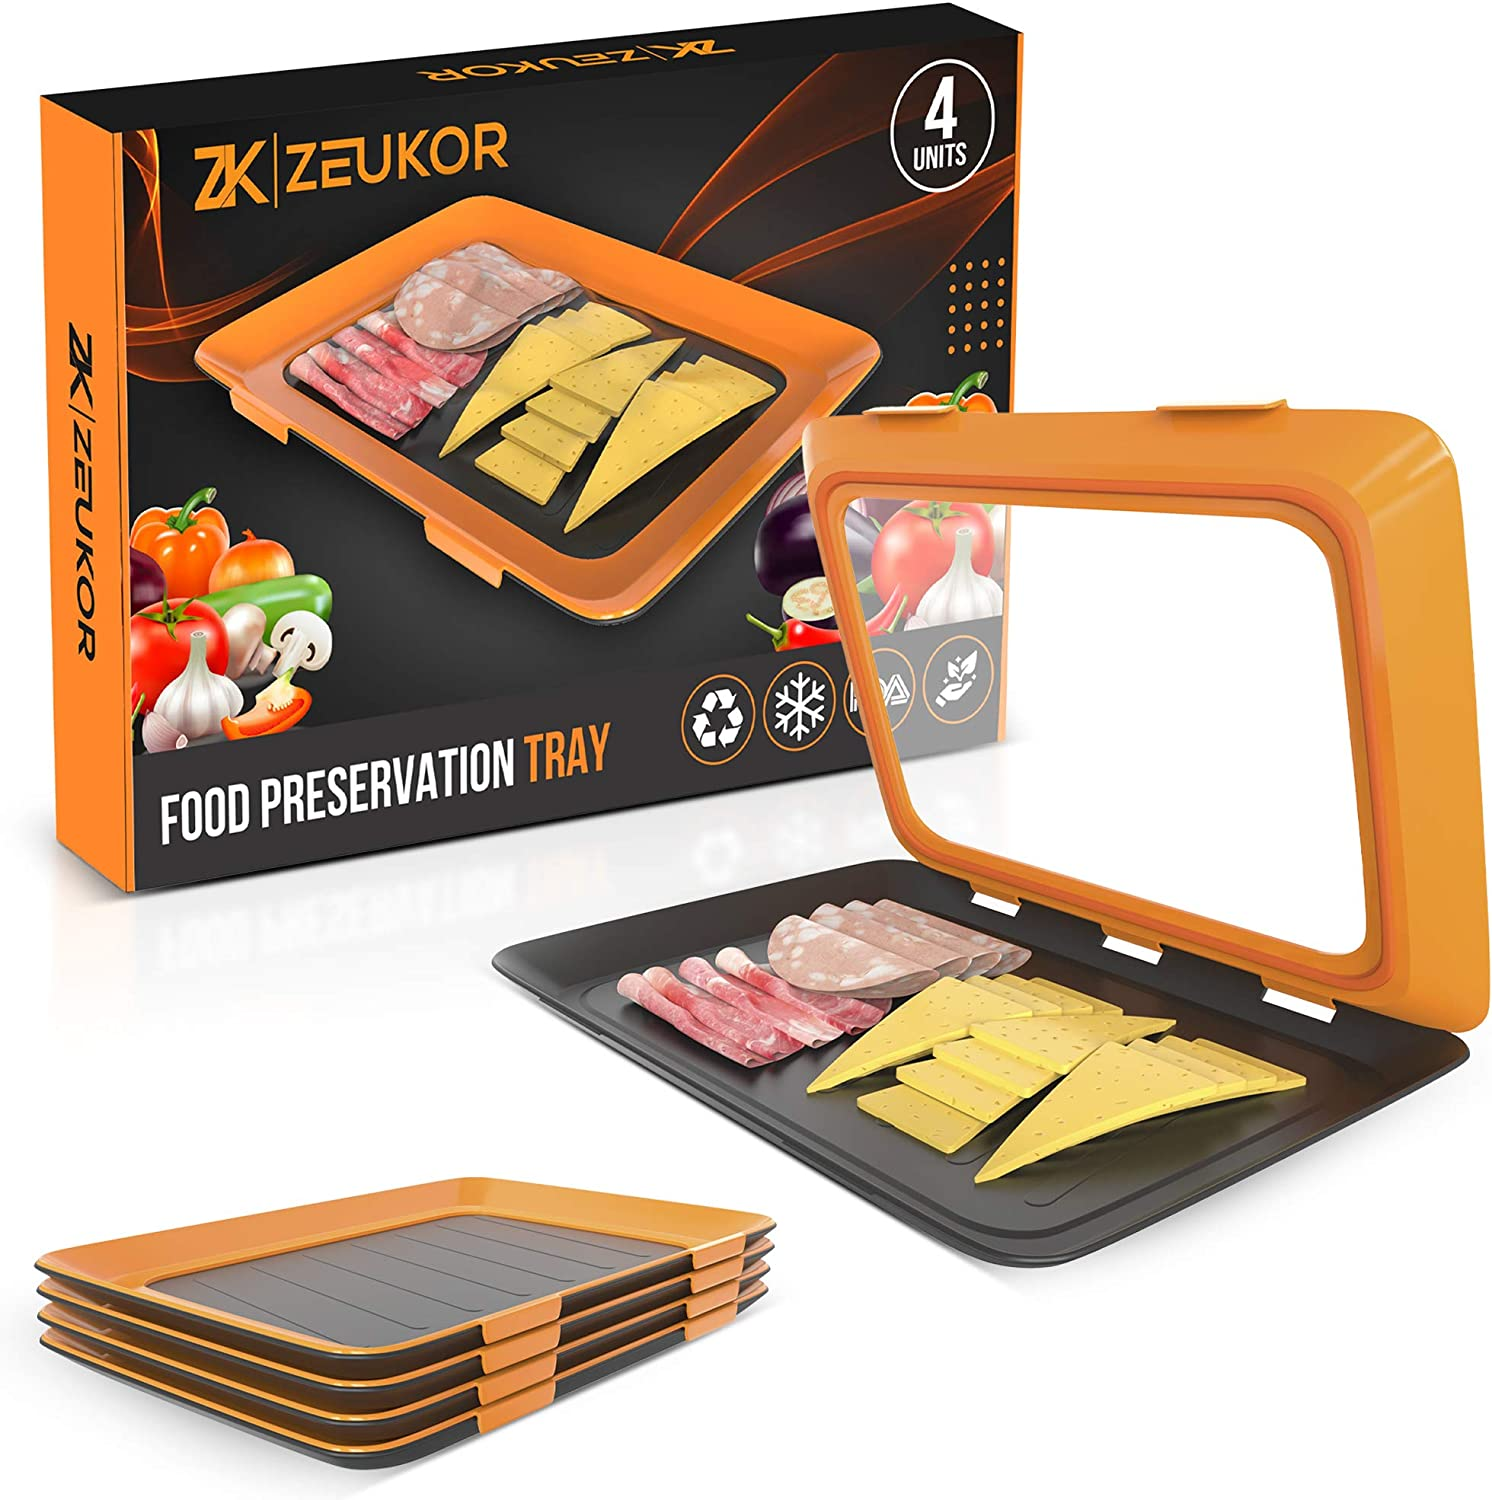 Zeukor Food Preservation Tray - Set of 4 Stackable Black & Orange Storage Containers with Elastic Covers - Tight Seal & Lock, Leftover Saver - Perfect for Cheese, Meat, Fish, Sliced Fruits, Veggies